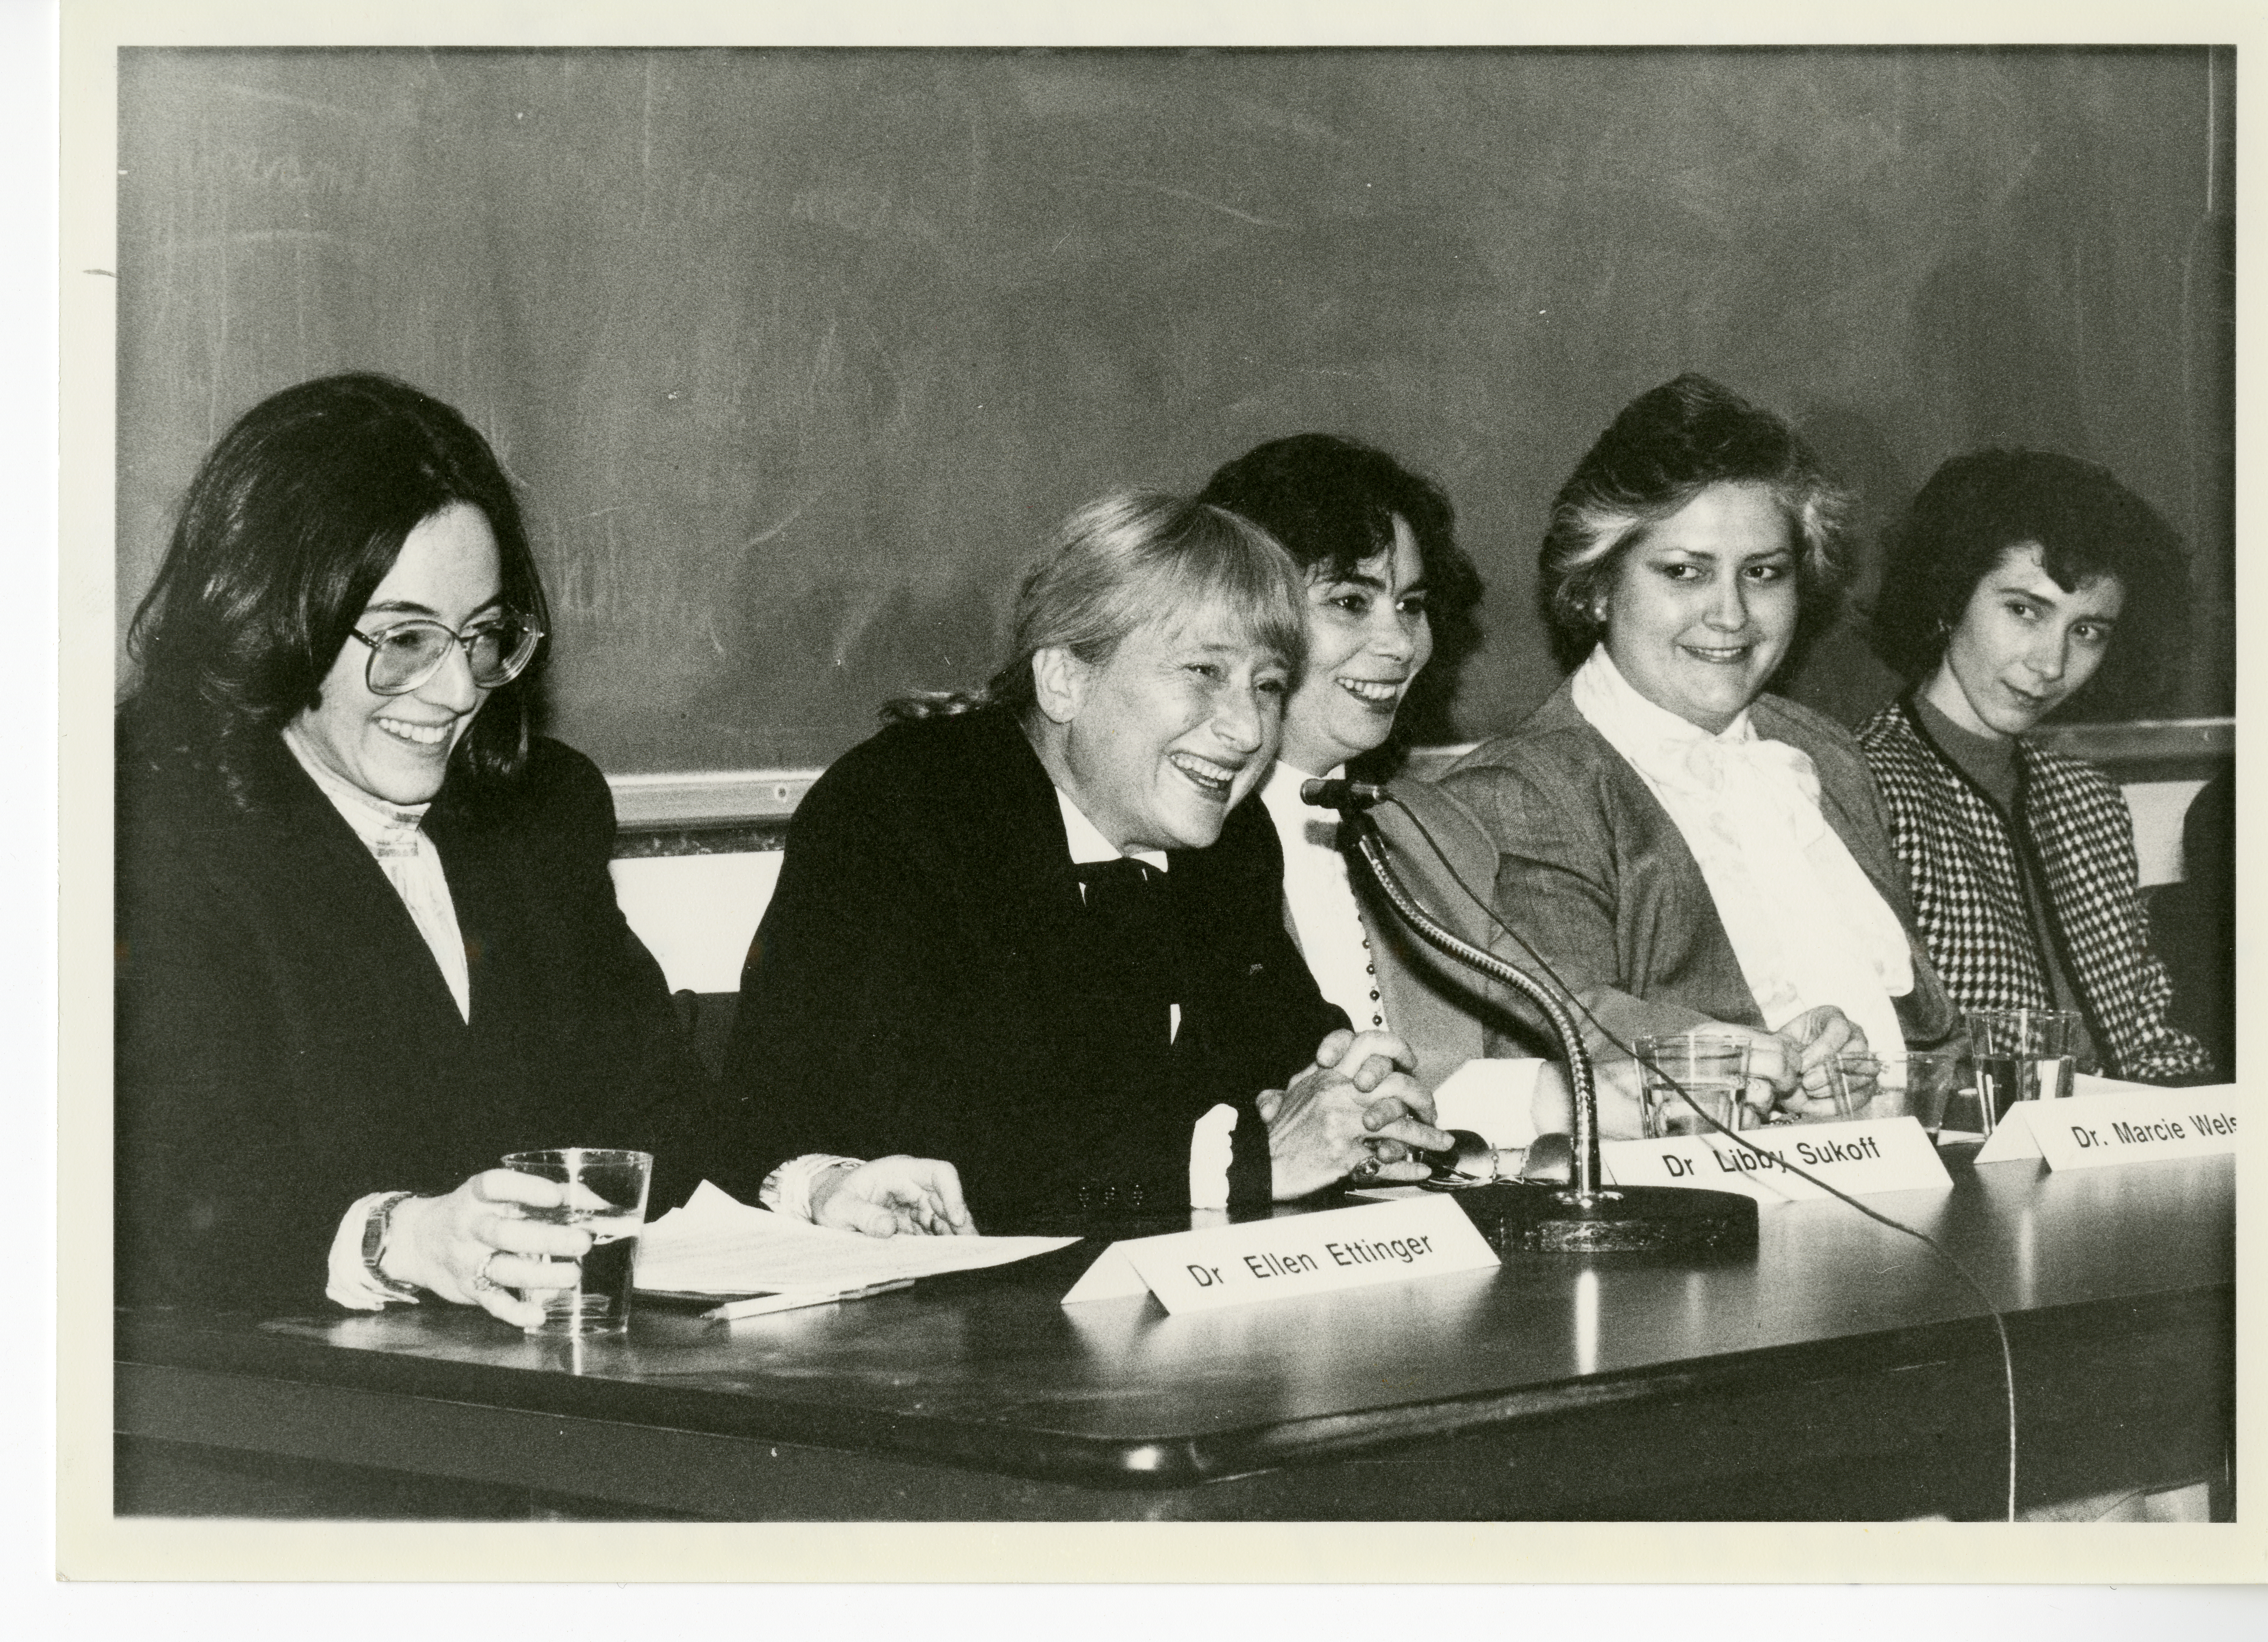 Women in Optometry Panel, SUNY, 1988. (L-R) Drs. Ellen Richter Ettinger, Libby Sukoff, Marcie Welsch, Madeline Romeu, and Monique Picard-Root. Image courtesy The Archives & Museum of Optometry